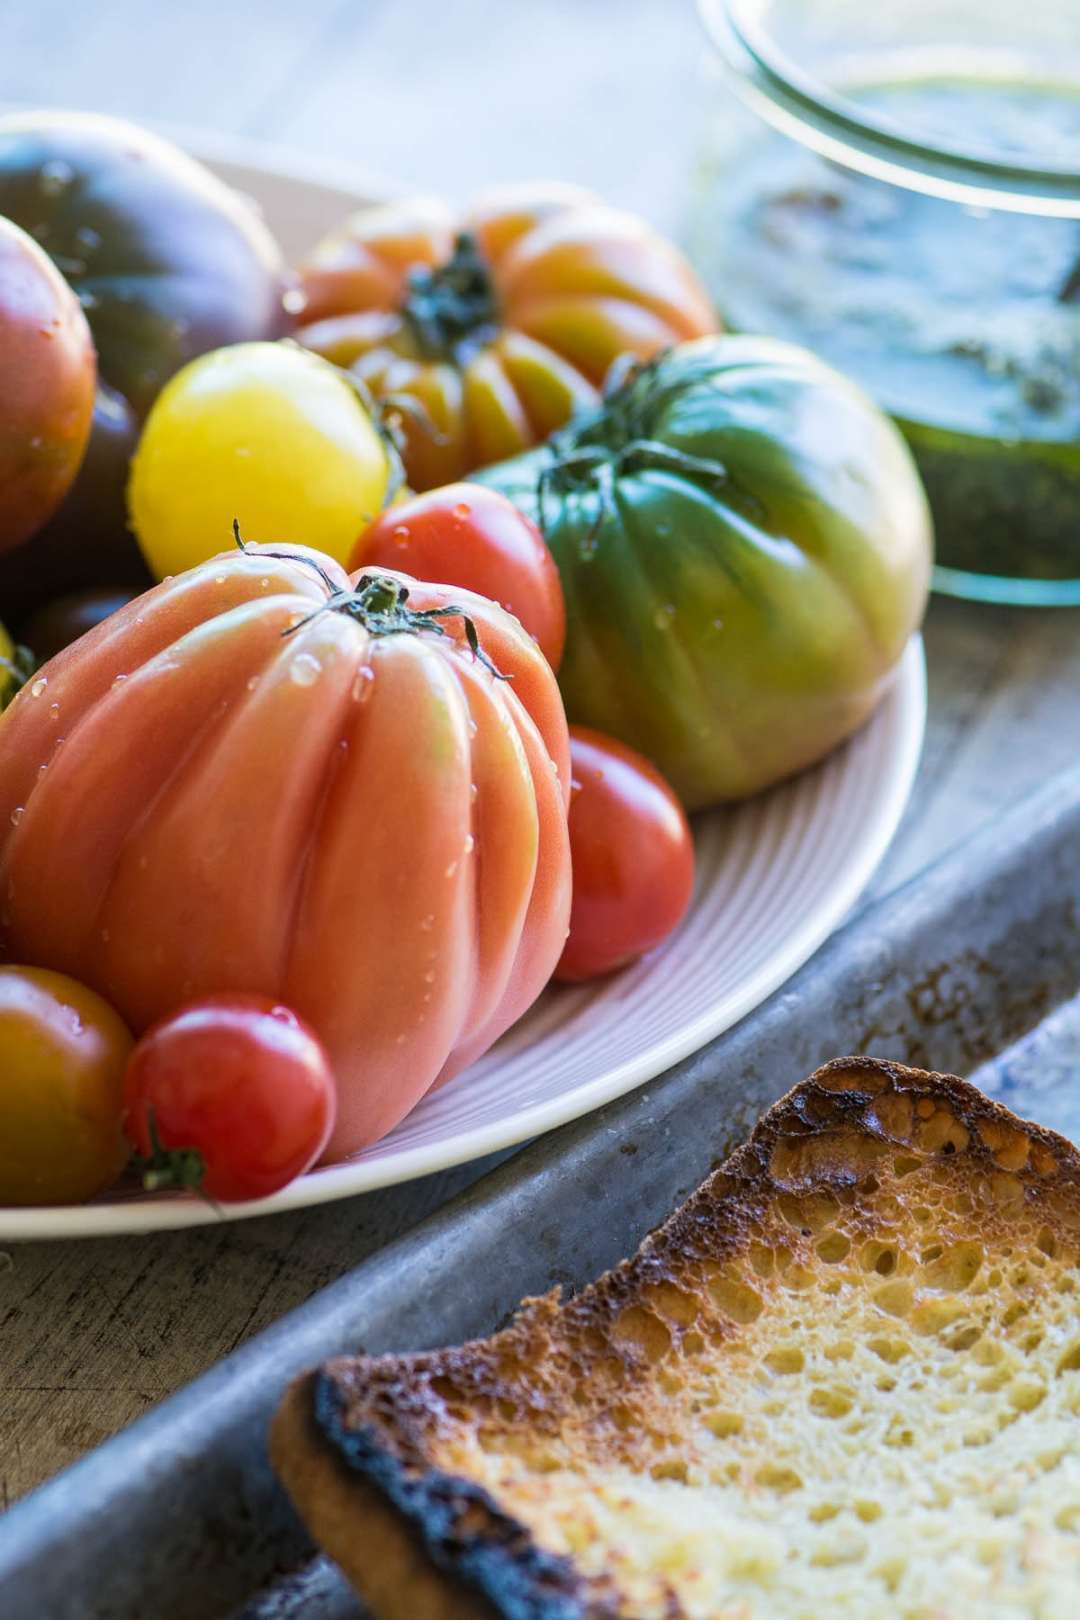 colorful heirloom tomatoes waiting to be sliced for Tomato Toast